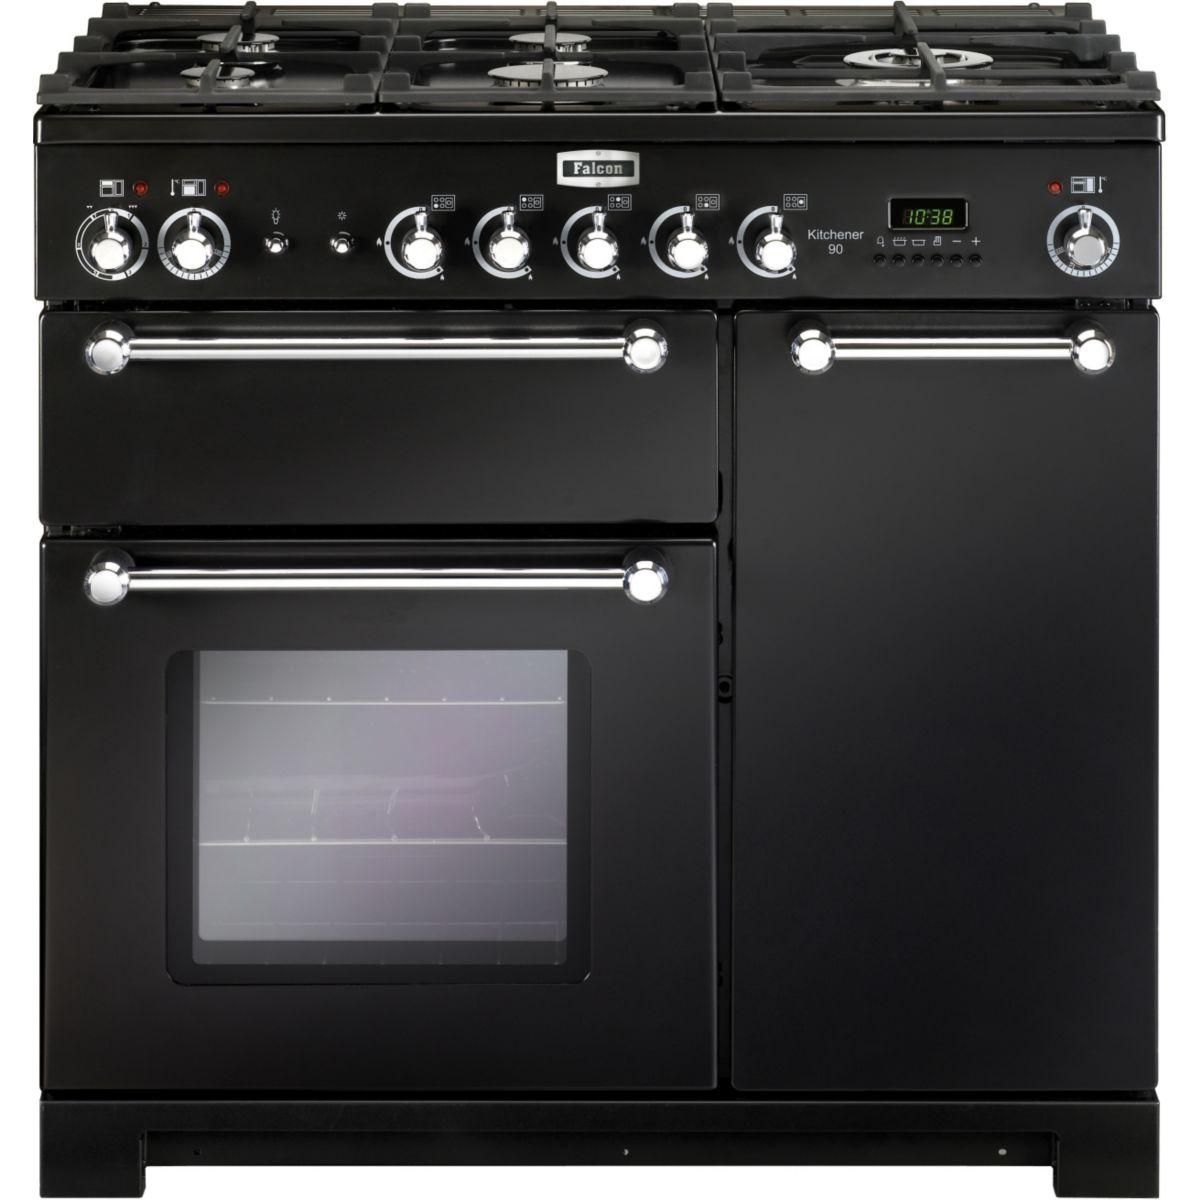 Piano de cuisson gaz falcon kitchener 90 mixte noir chrome - livraison offerte : code livp (photo)